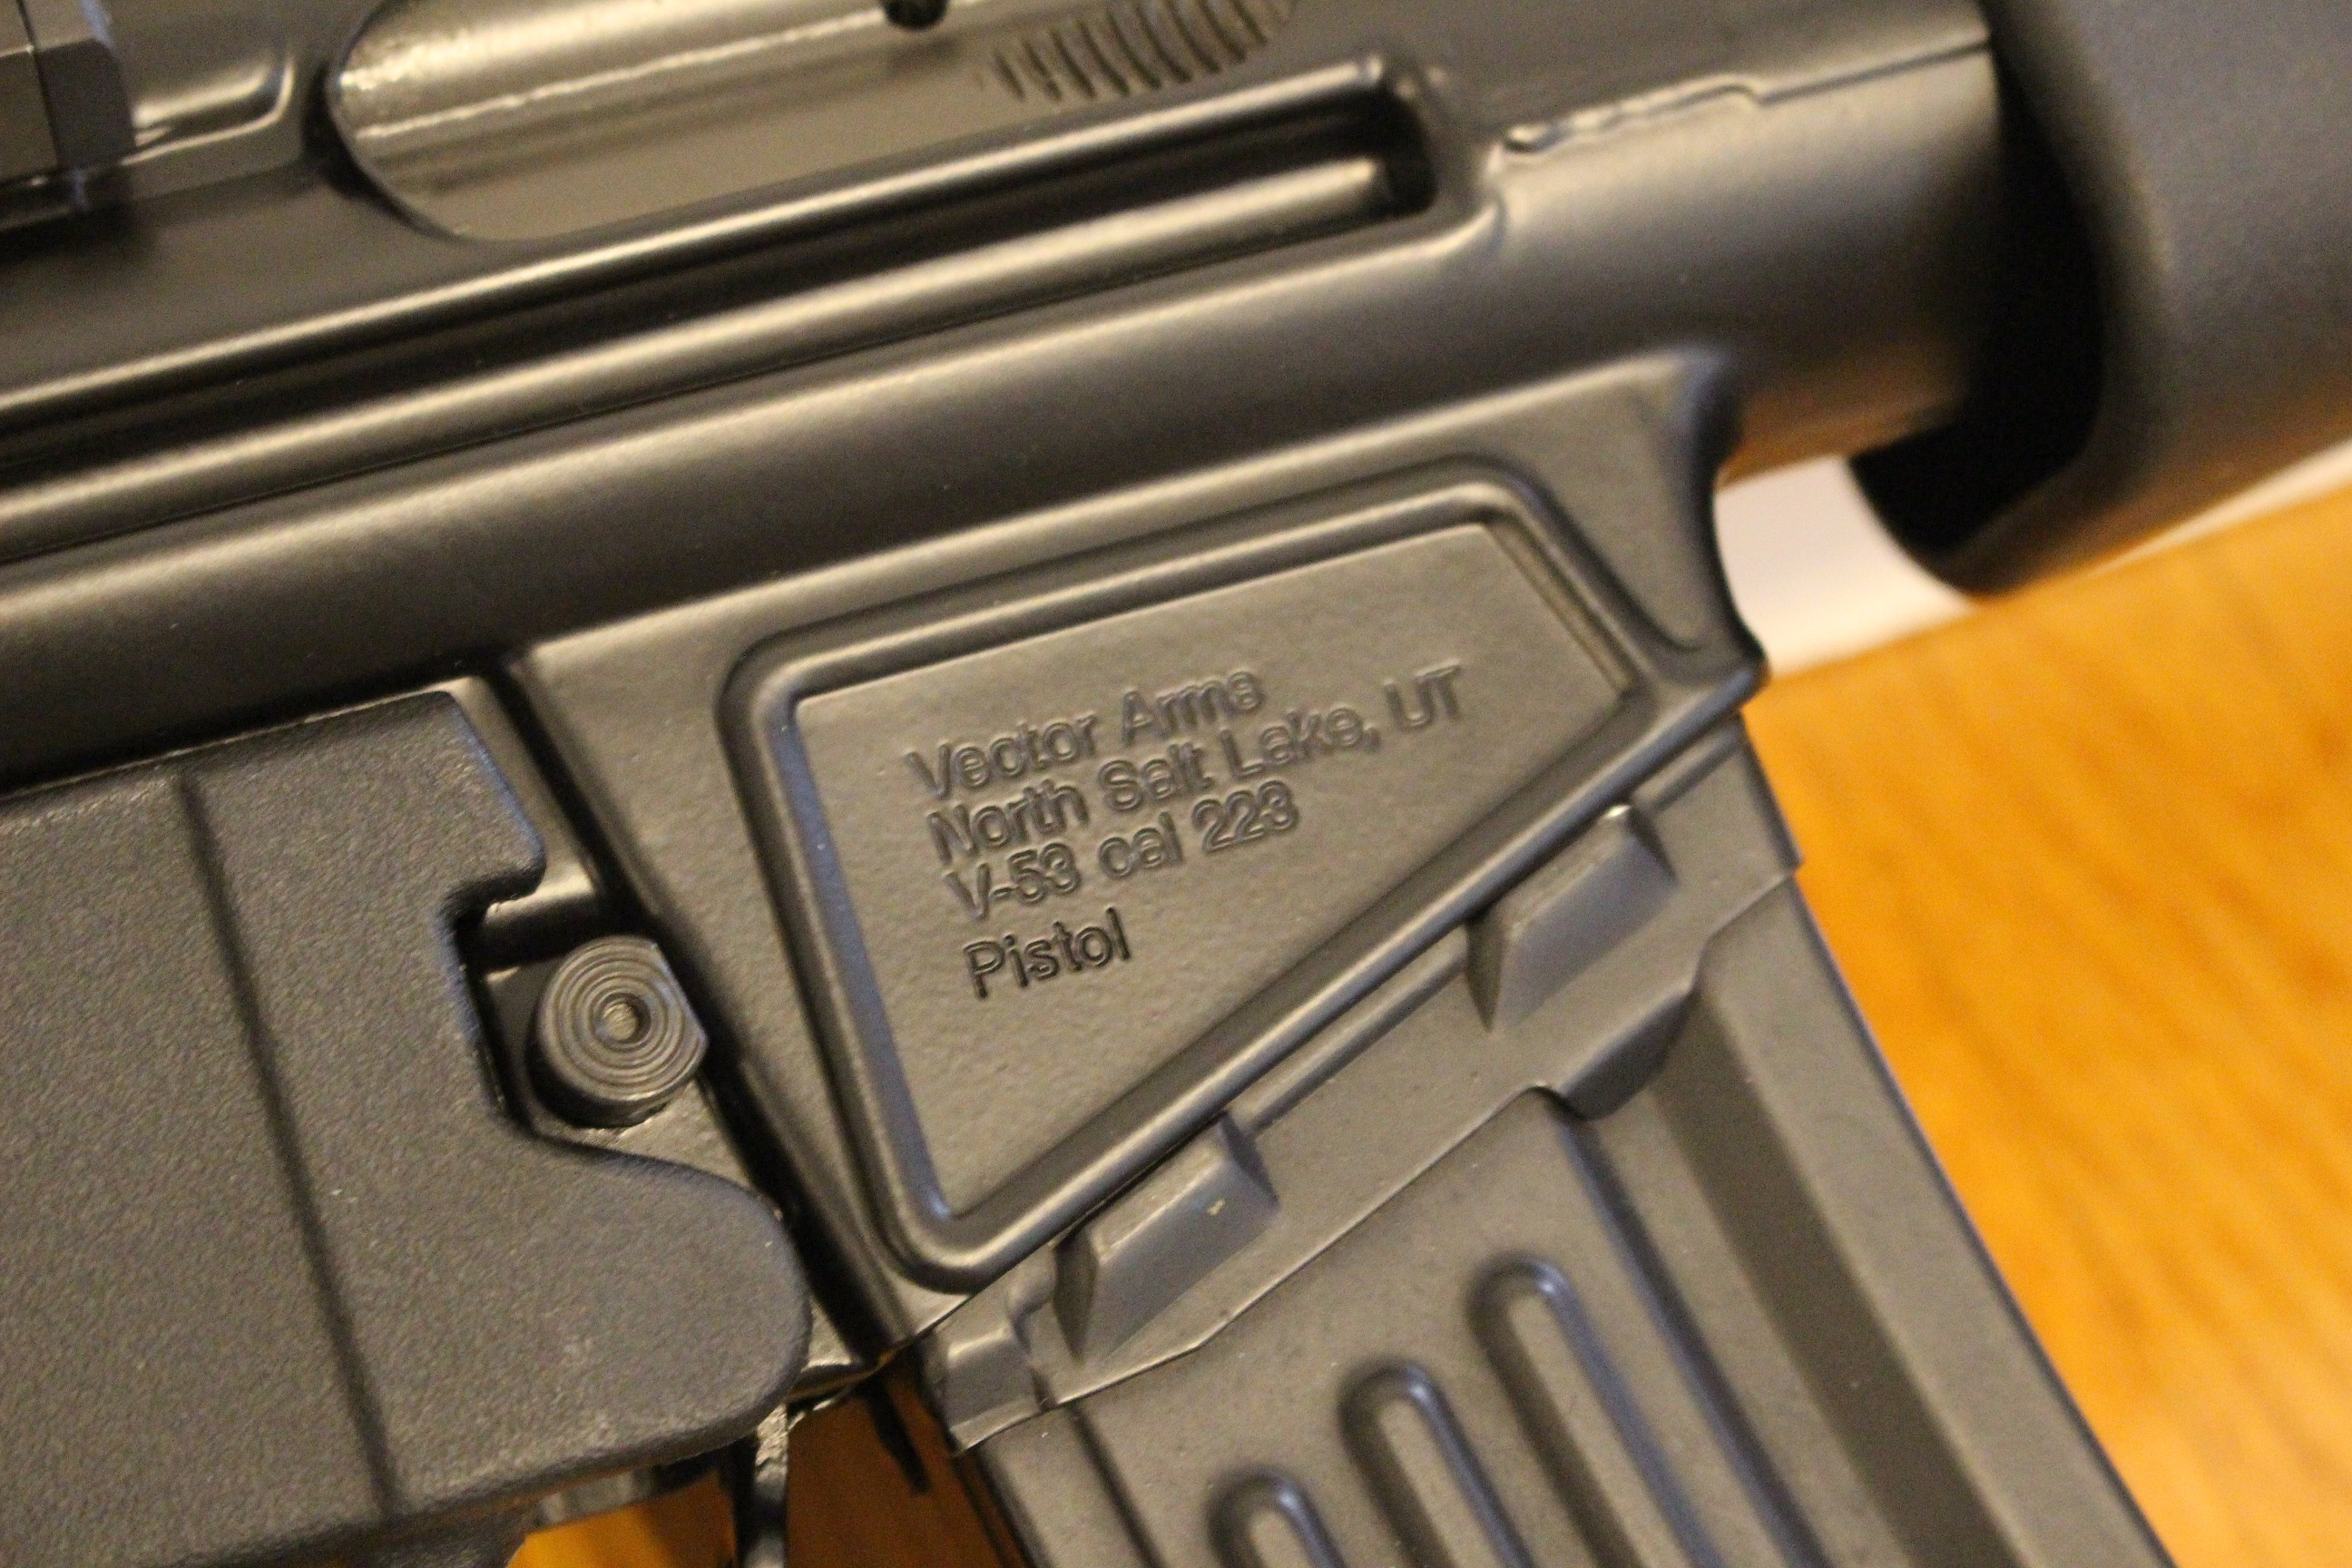 SOLD!: Vector 53 in SBR/pistol configuration - new, unfired, with accessories- alt=,500-img_1525.jpg